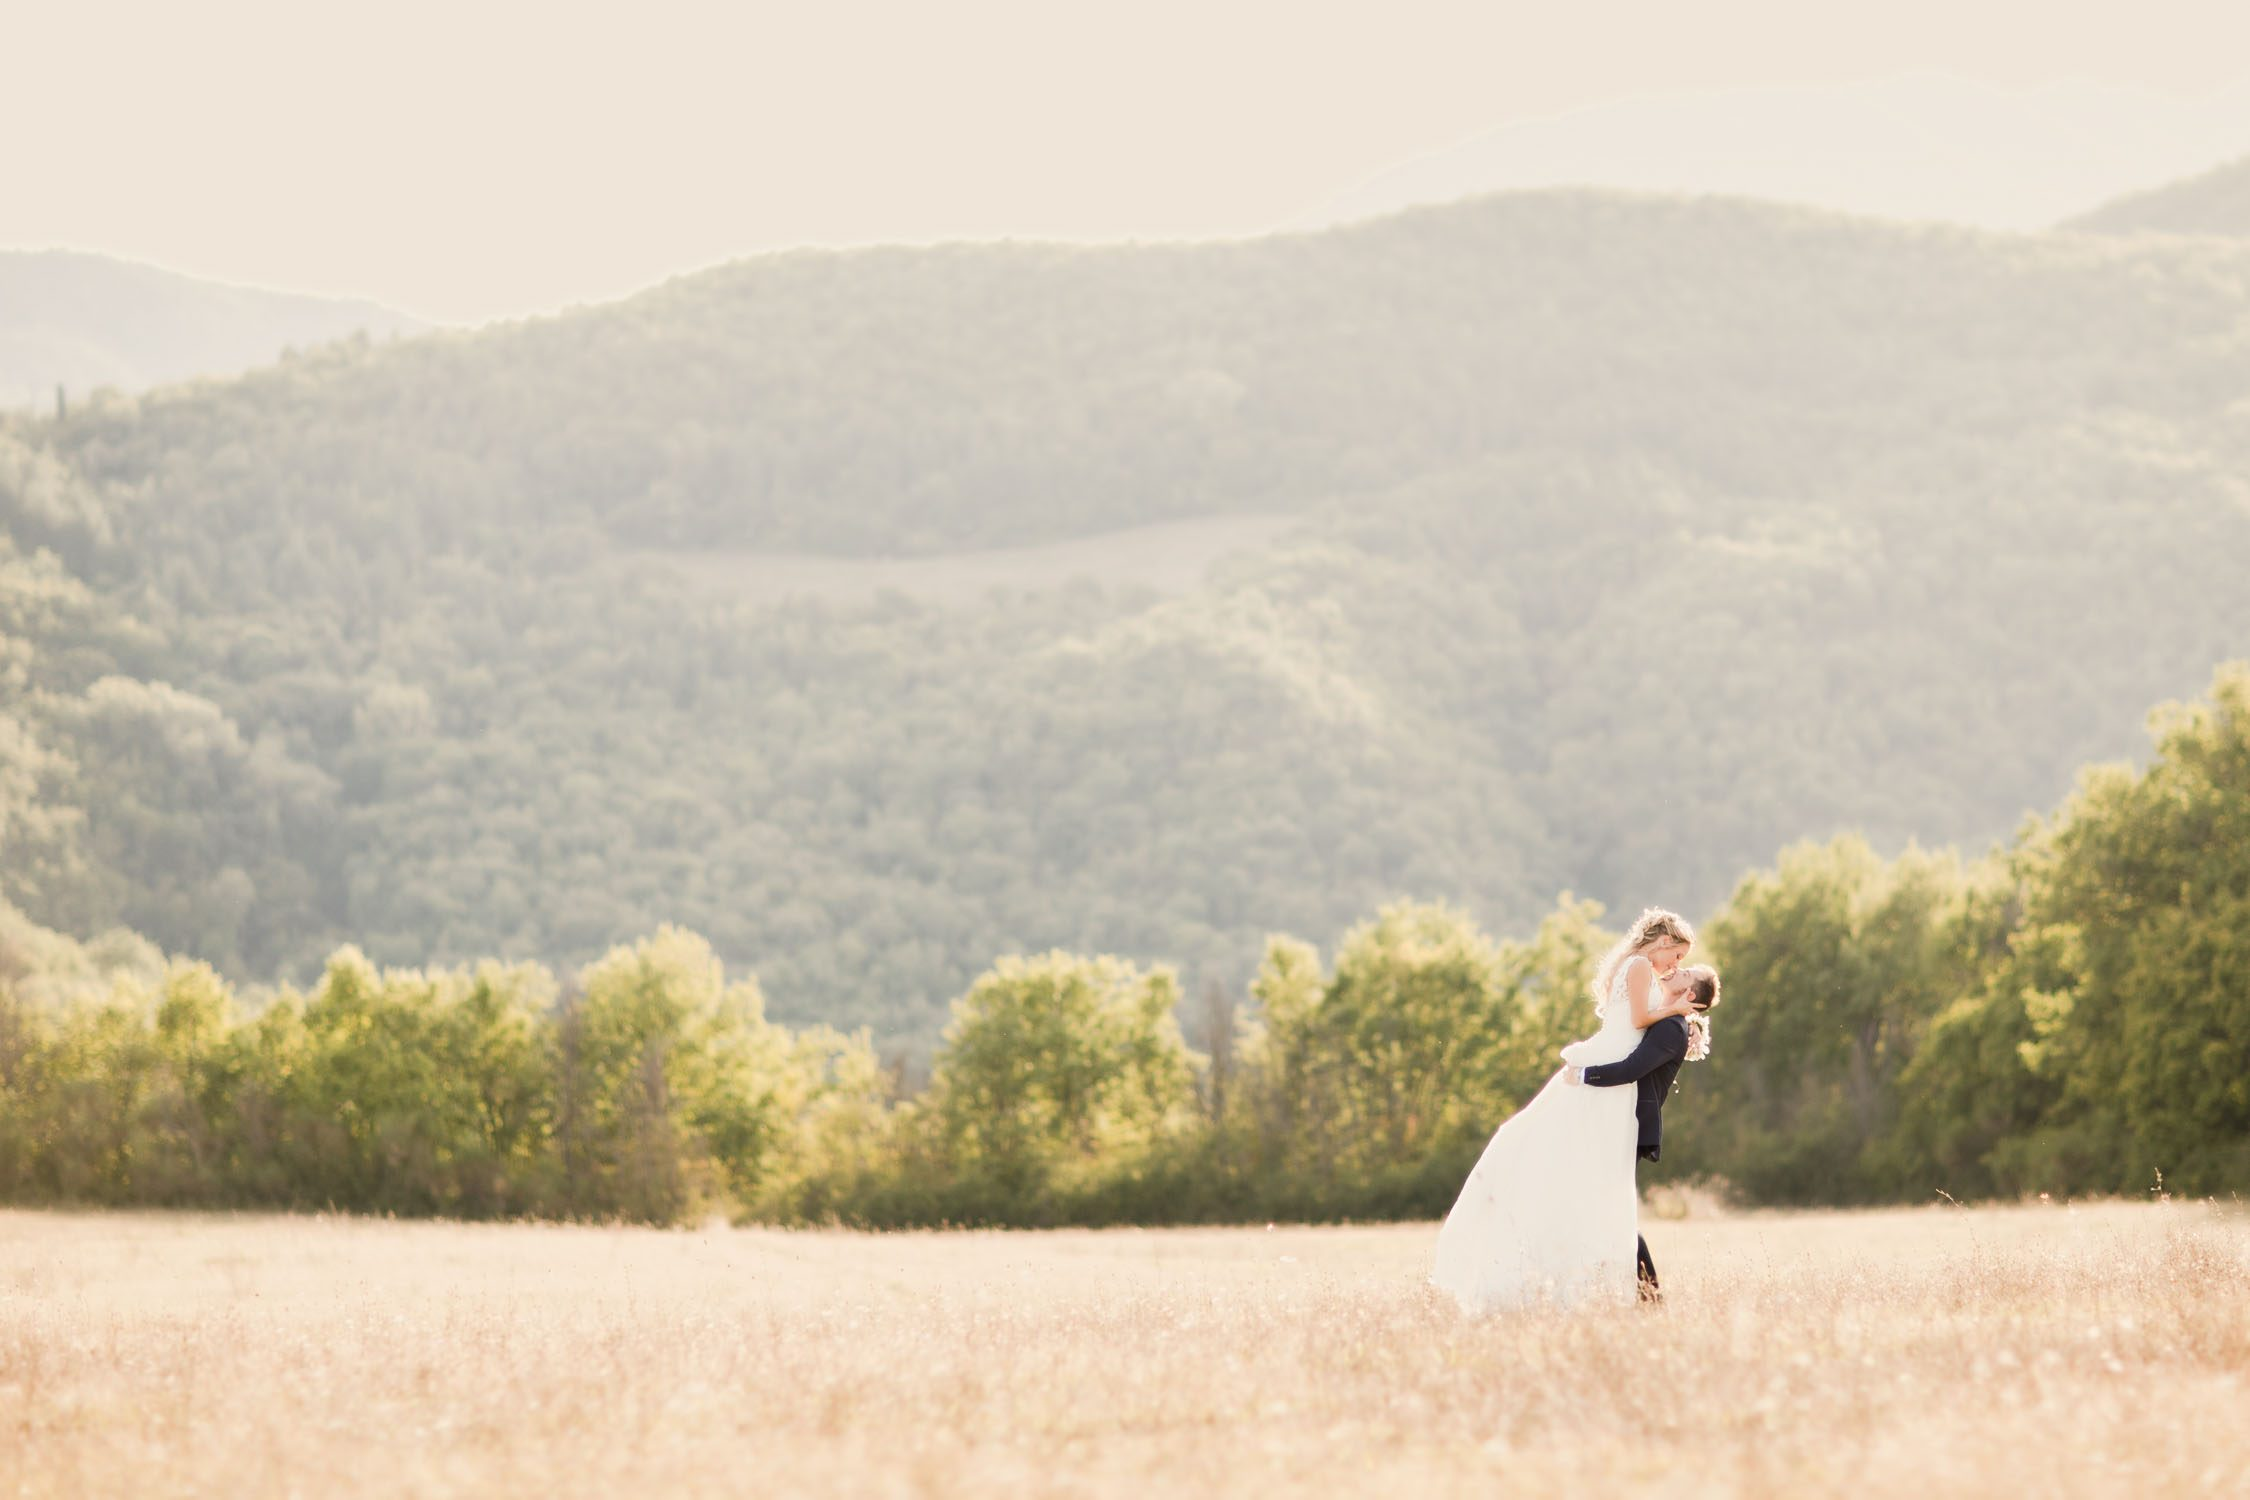 Wedding picture in Tuscany Countryside